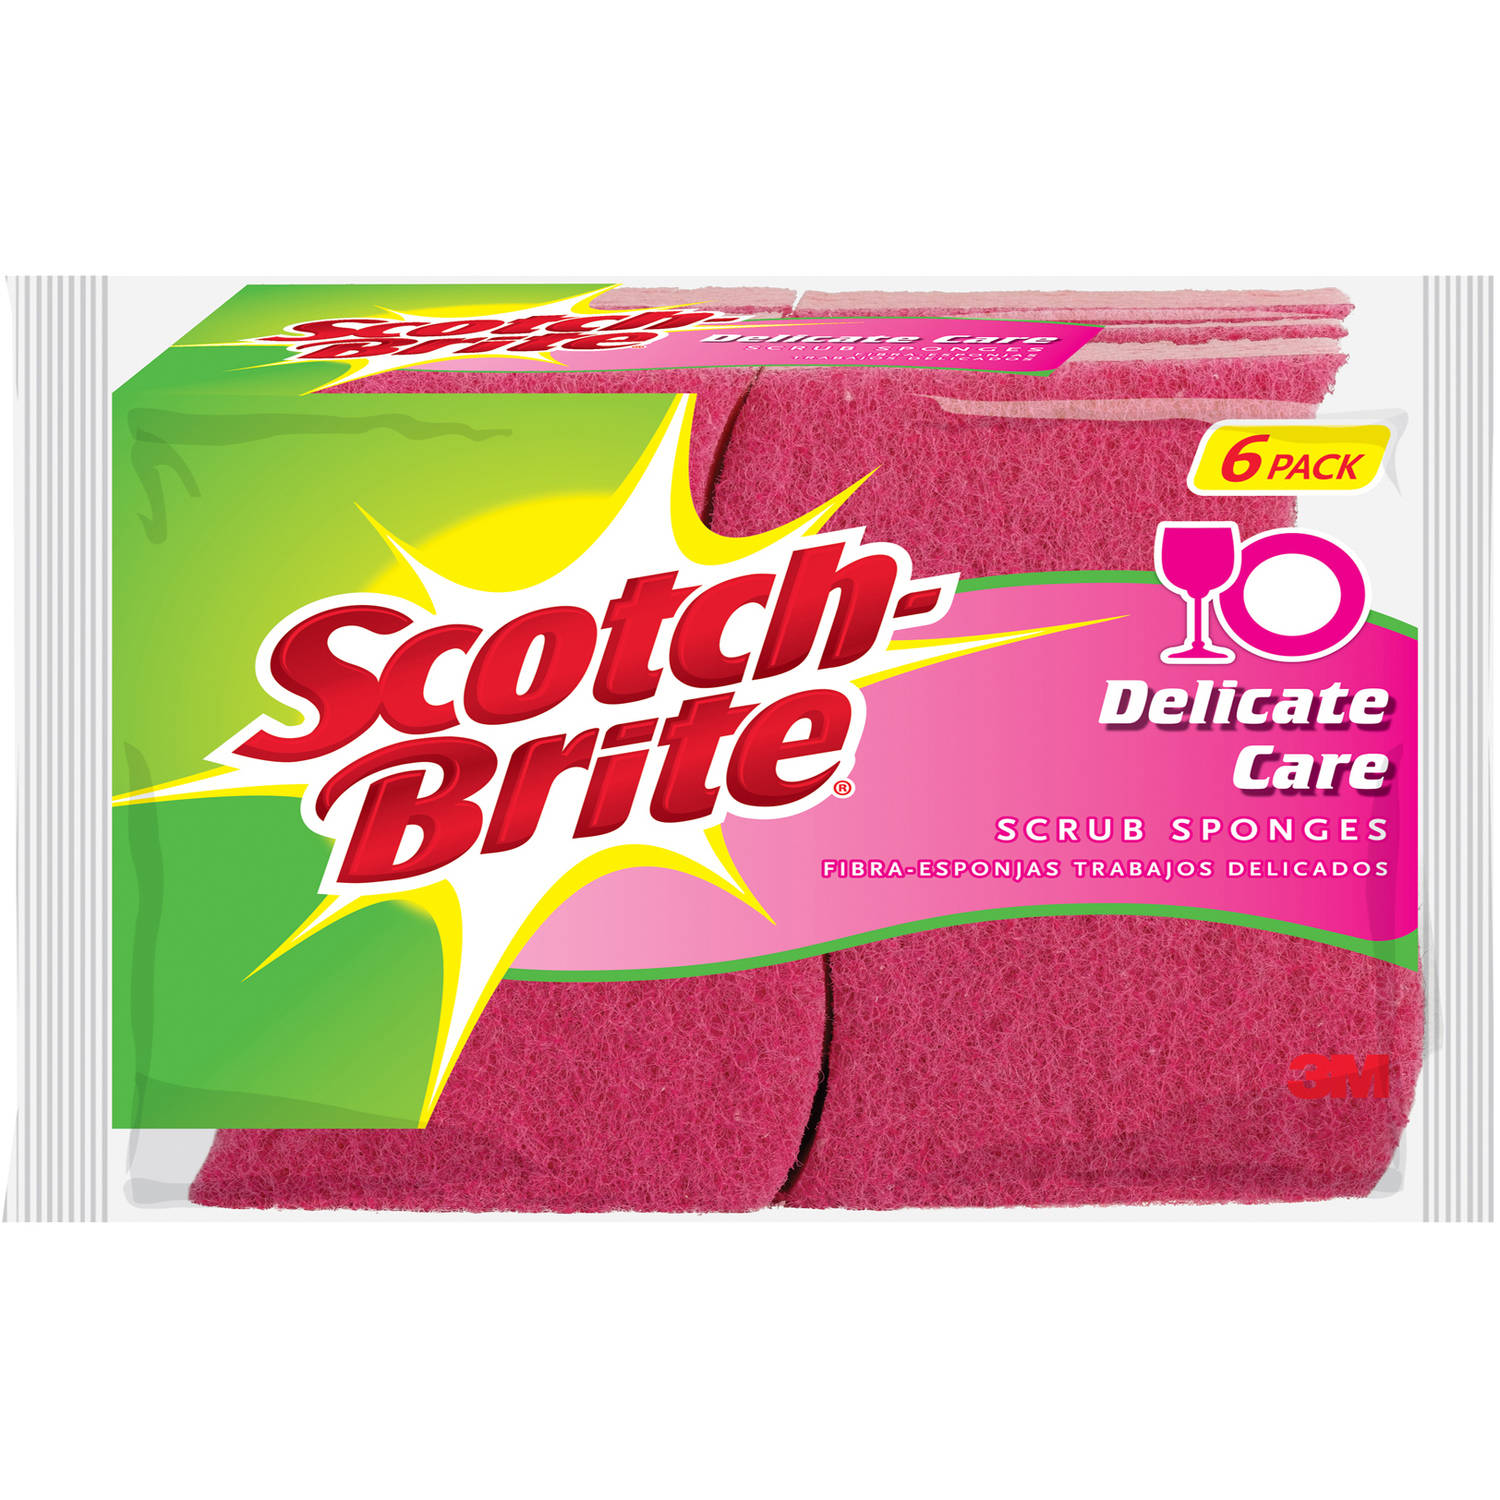 Scotch-Brite Delicate Care Scrub Sponges, 6 count